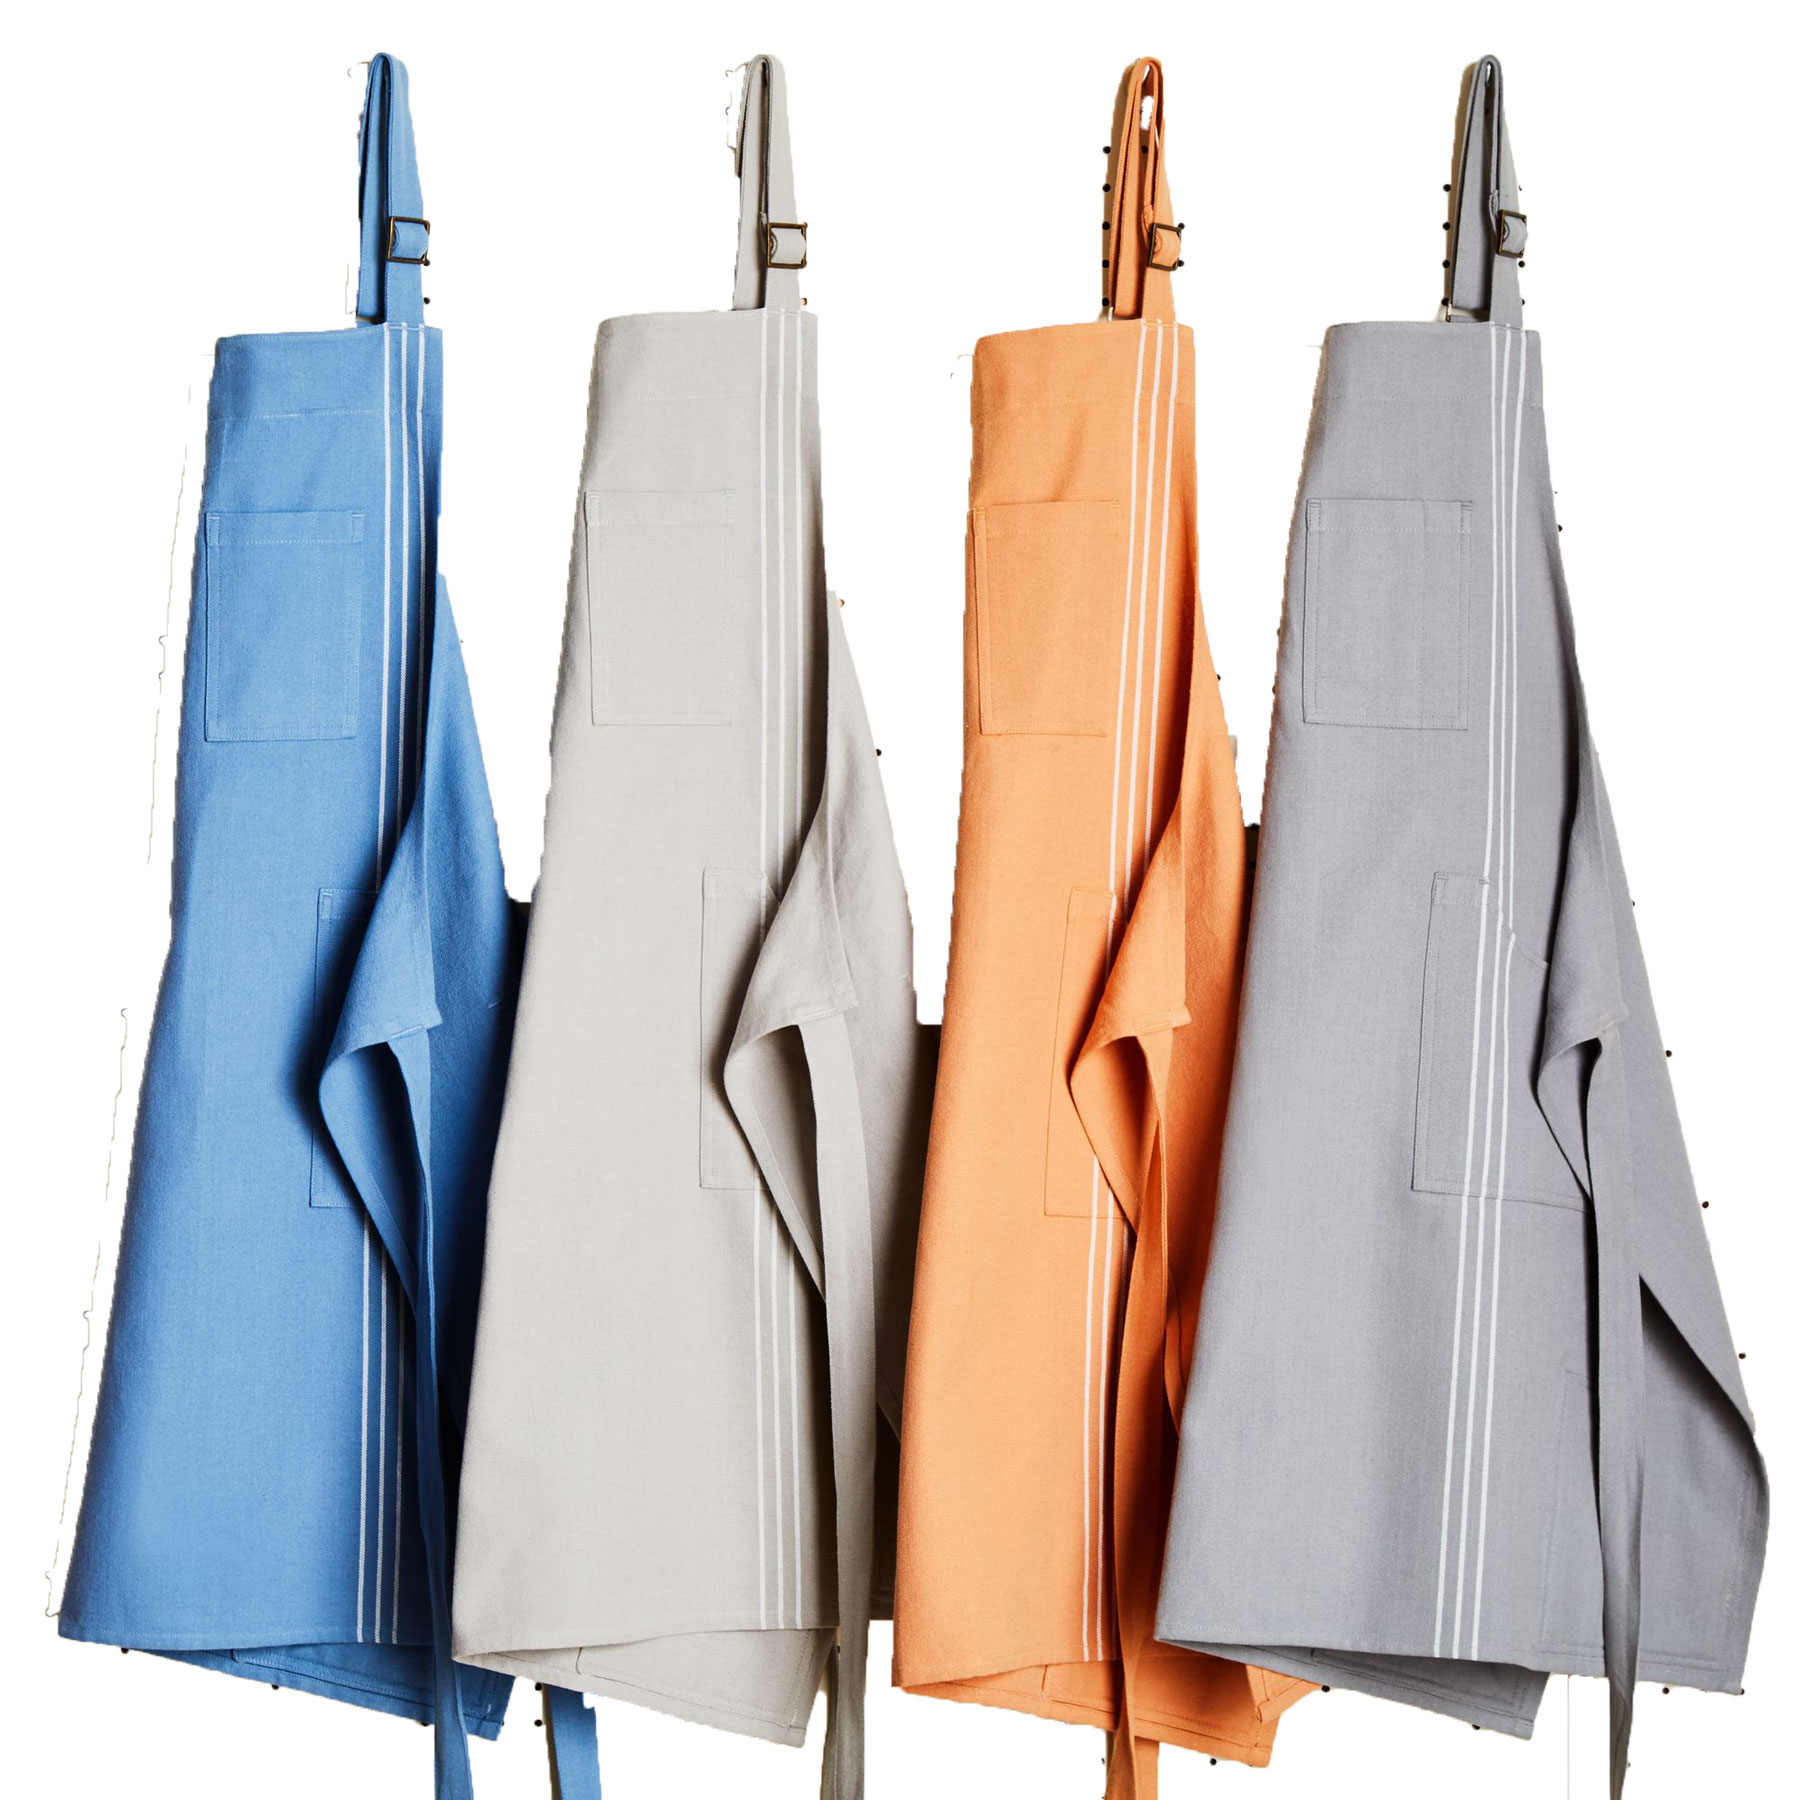 6 Clever Items 6/28/19 Food52 Five Two Ultimate Apron